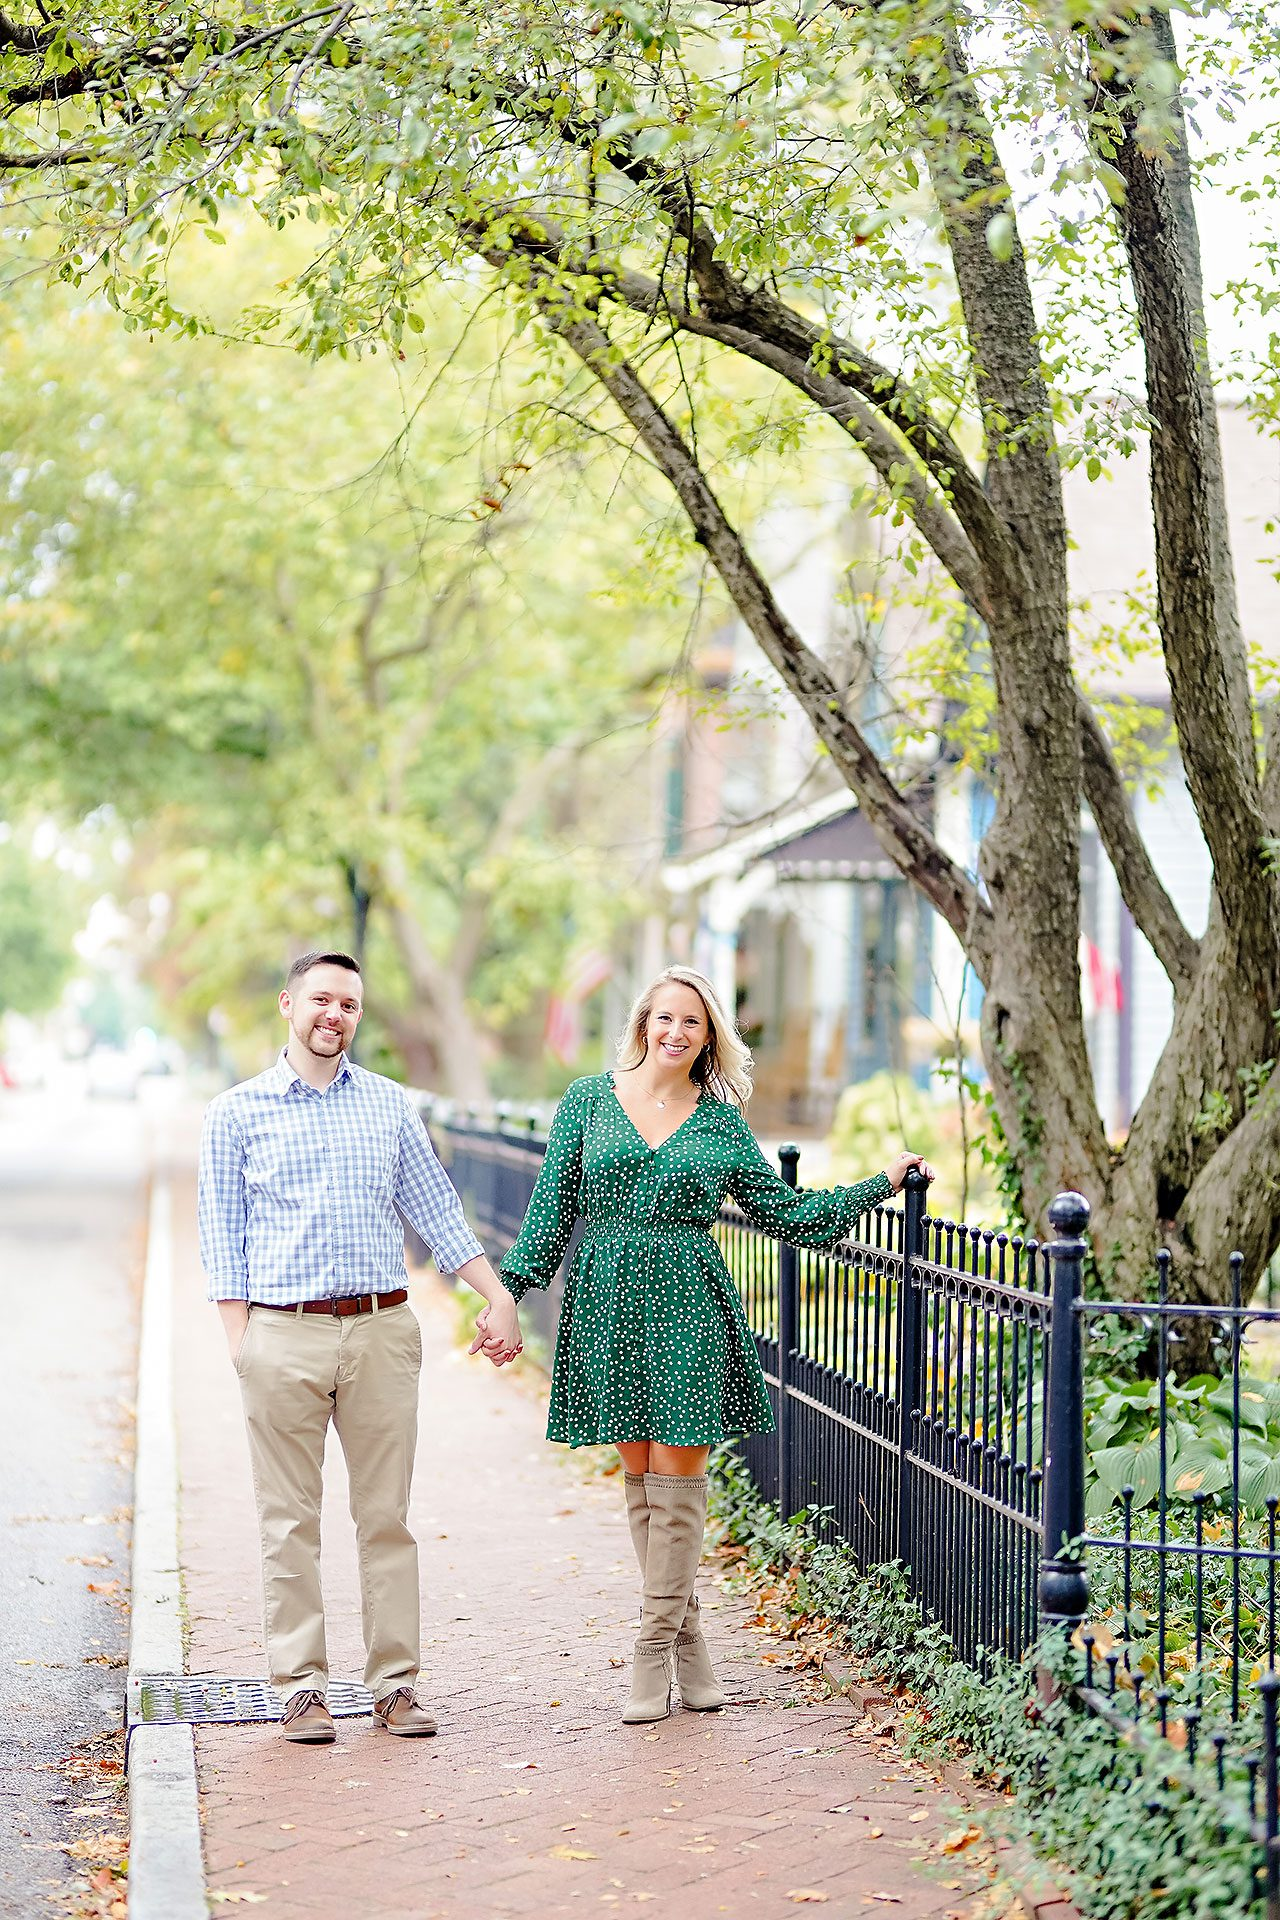 Kristen Jonny Indianapolis Downtown Engagement Session 081